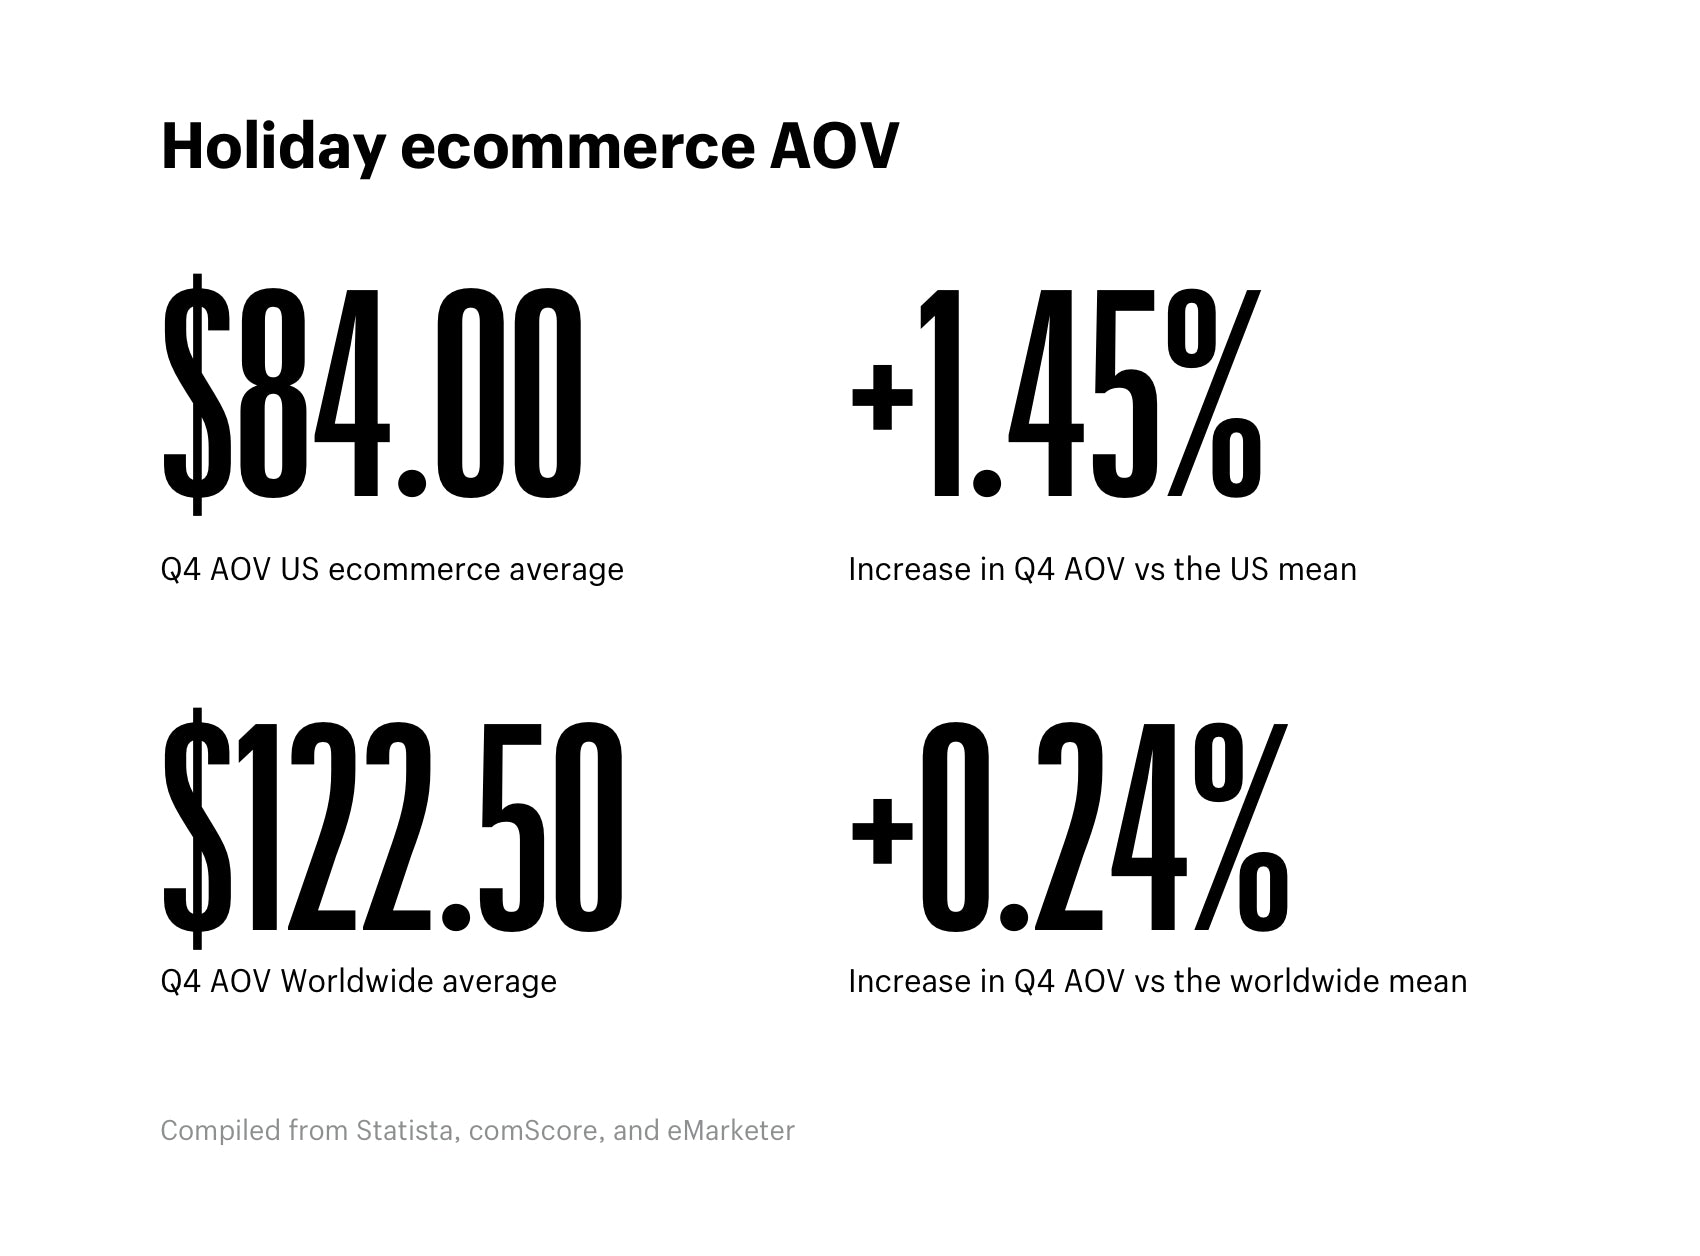 Holiday ecommerce AOV